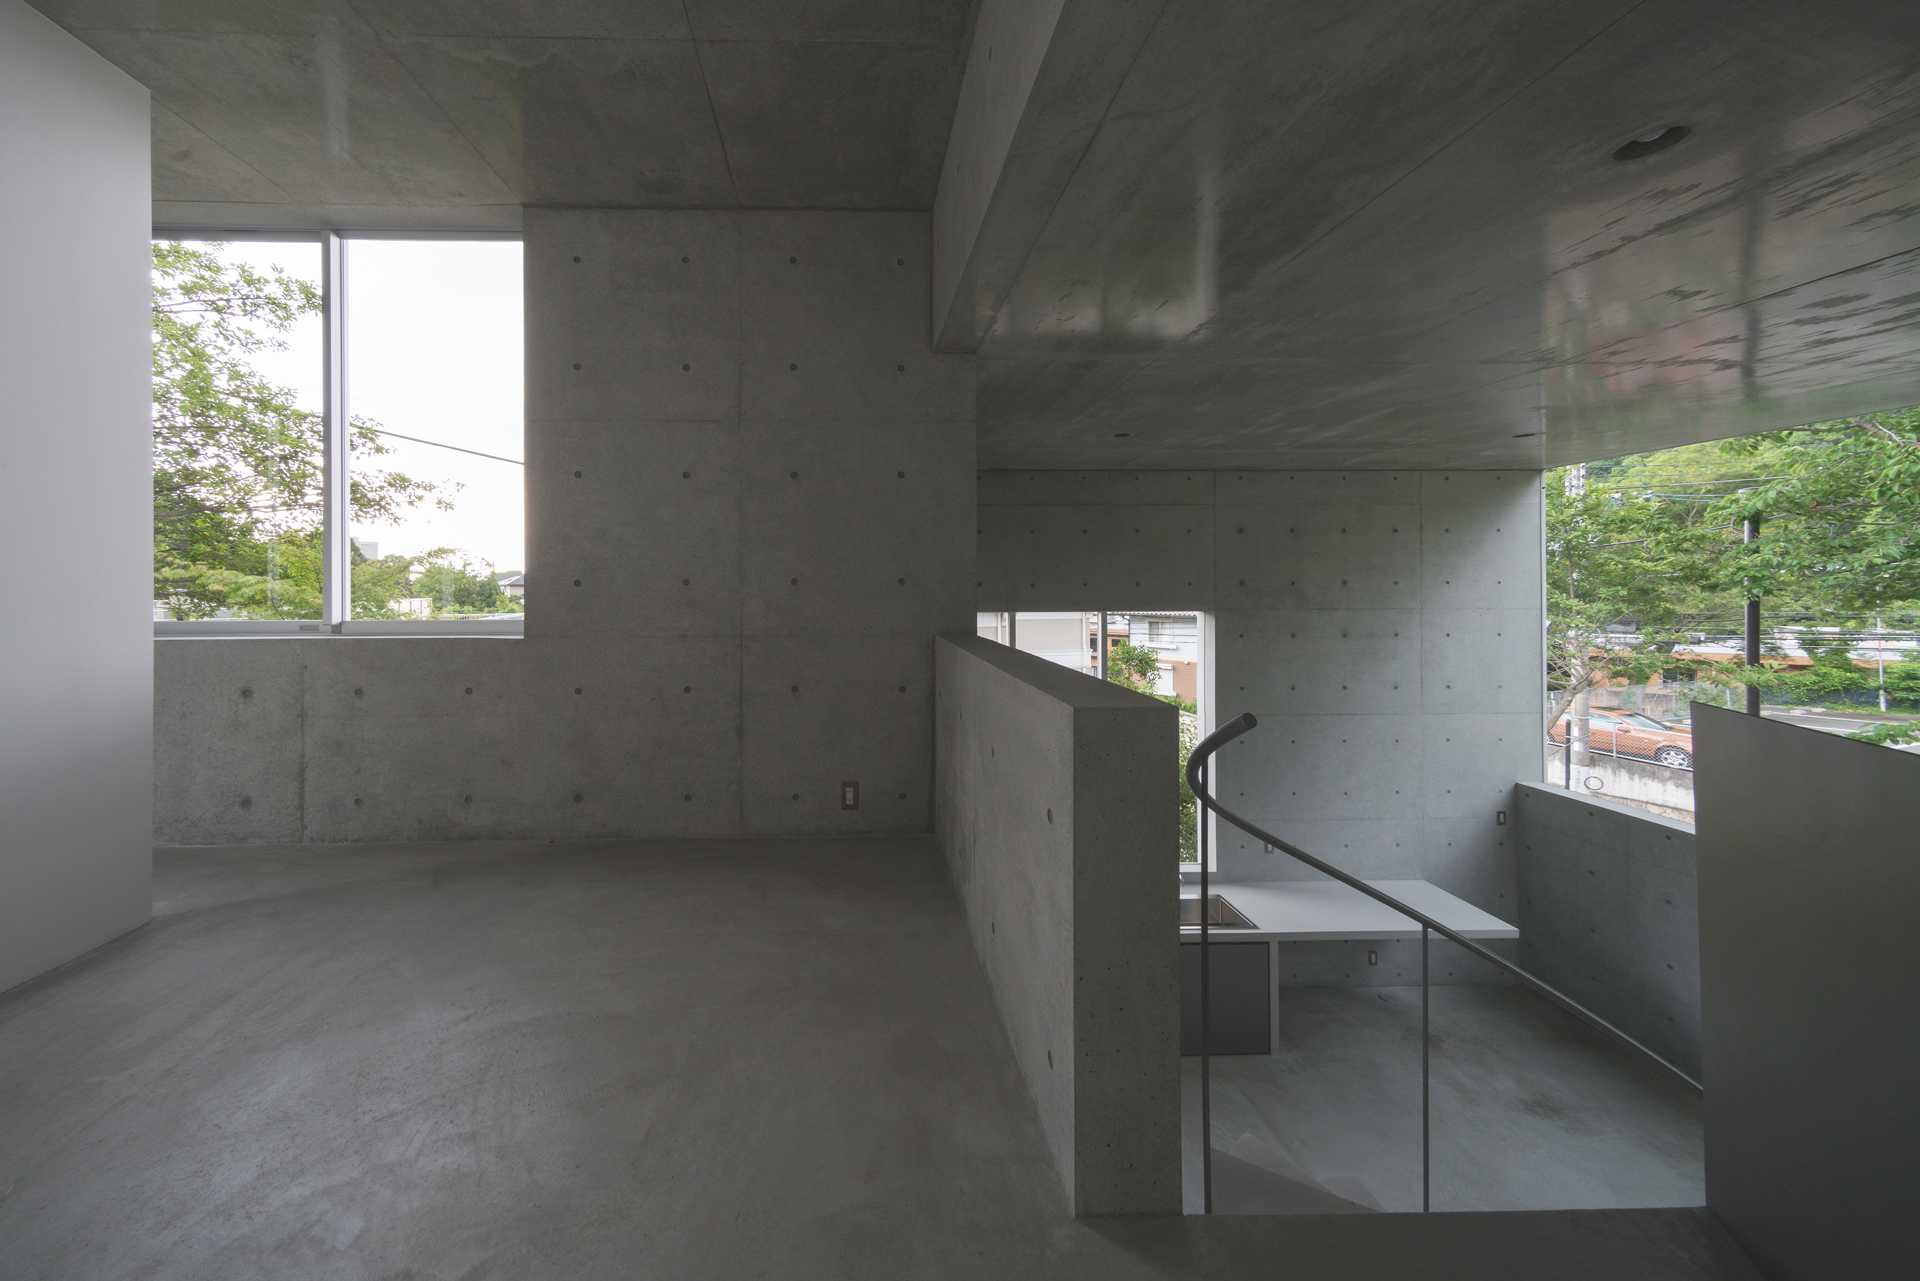 Concrete House  - 16 13 46